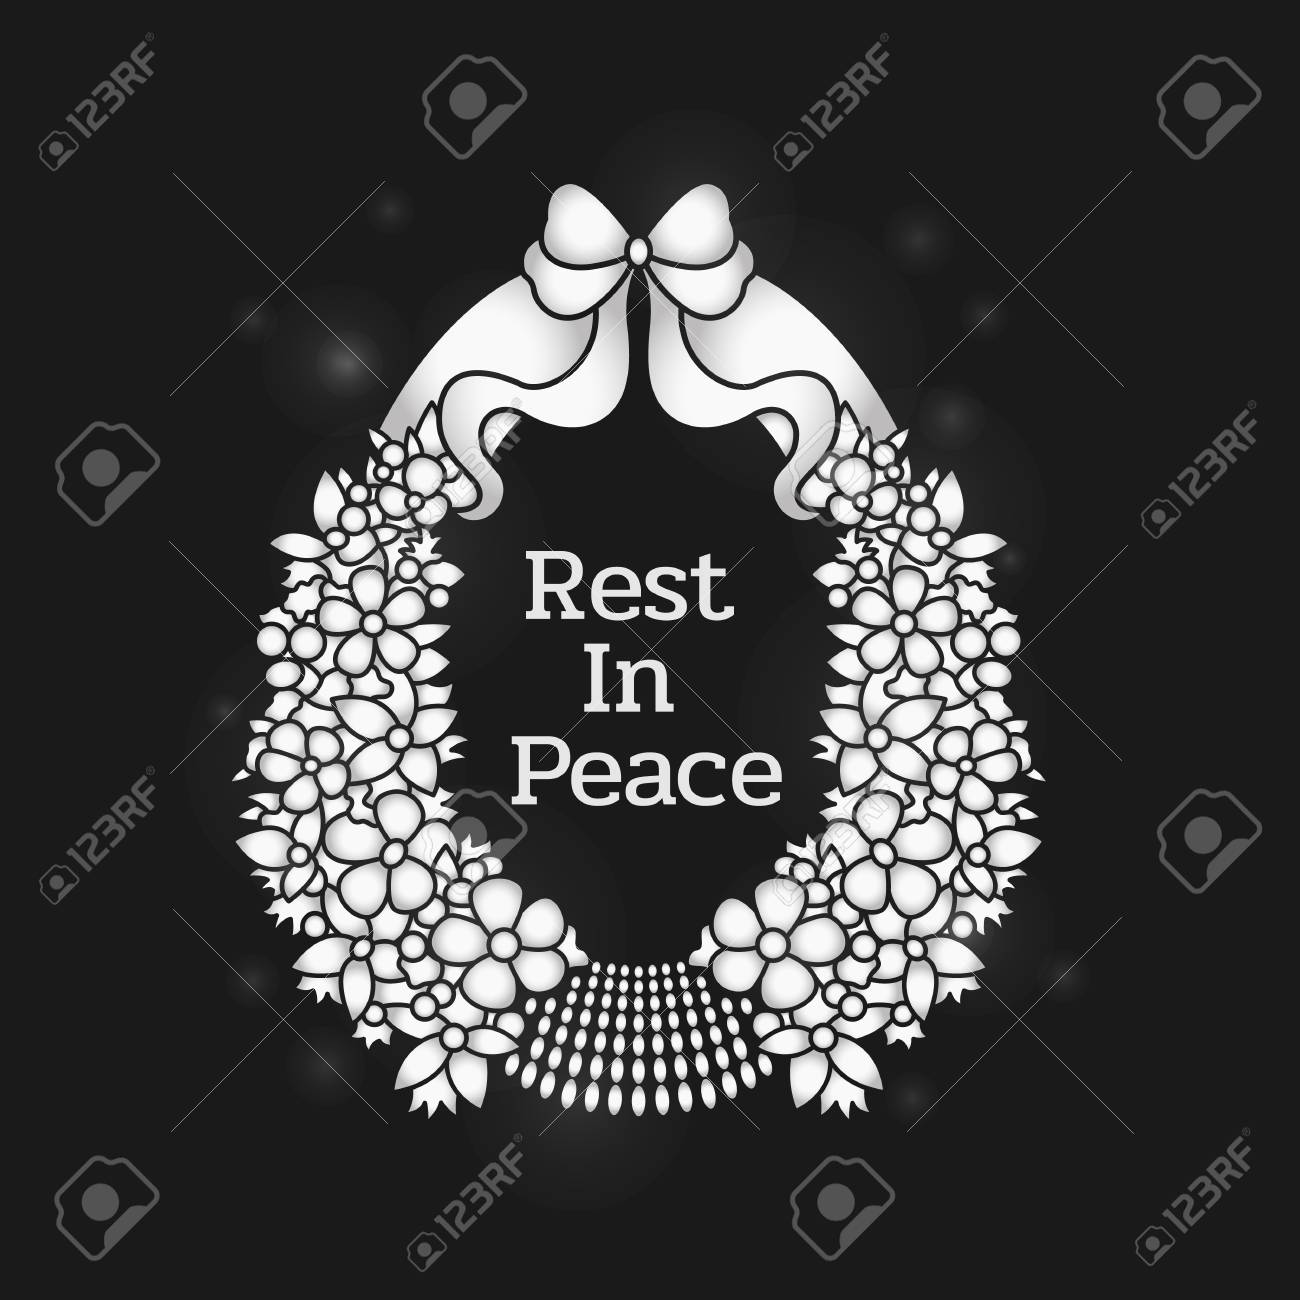 Funeral banner with rest in peace text in flowers wreath on black funeral banner with rest in peace text in flowers wreath on black background vector design stock izmirmasajfo